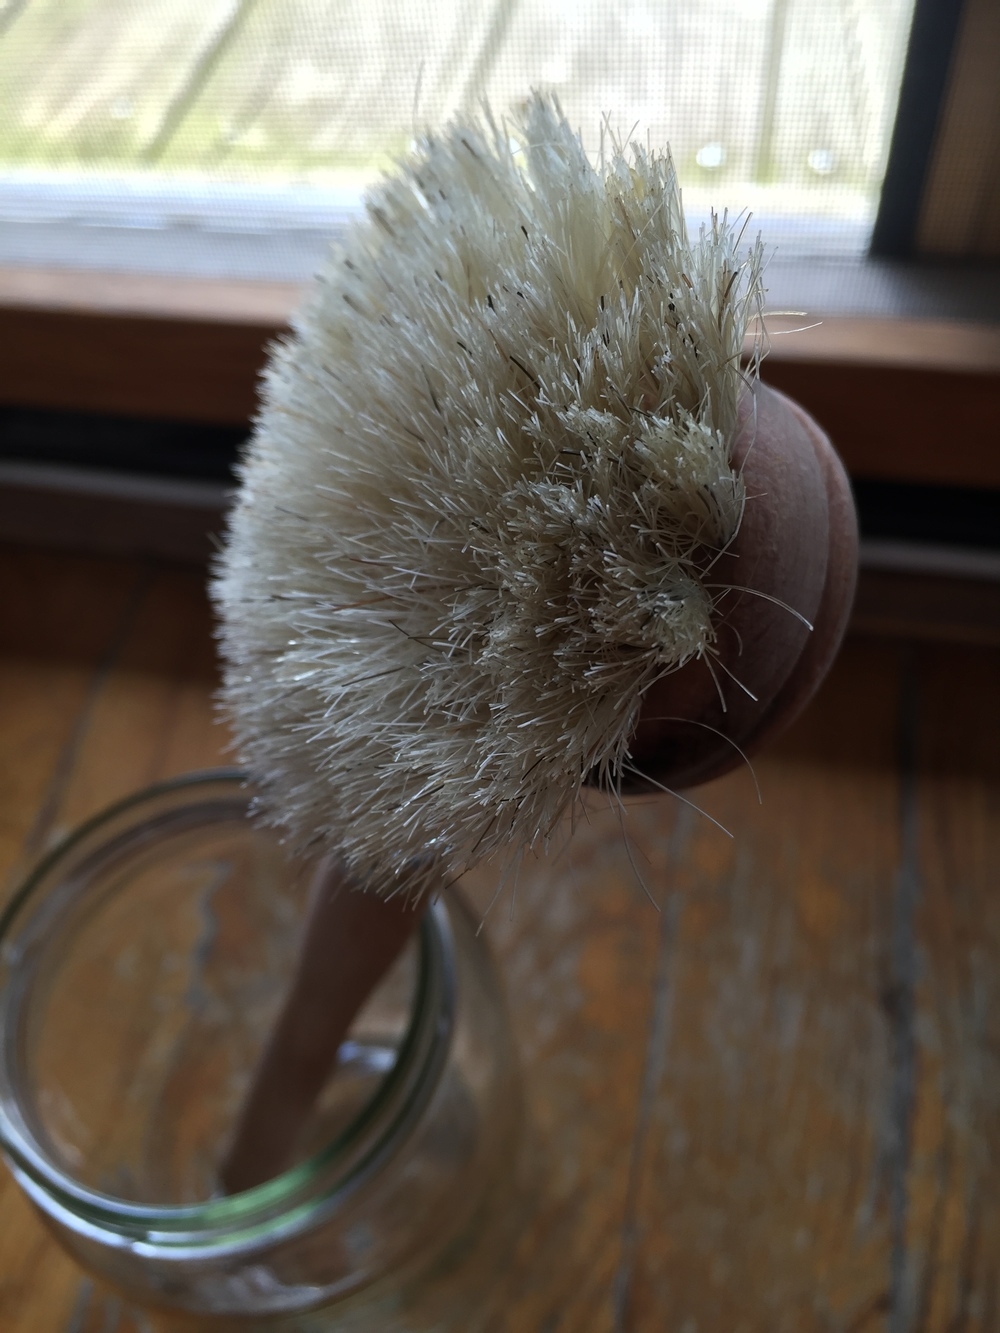 Brush head is a great size and fits in most of my jars for easing cleaning.